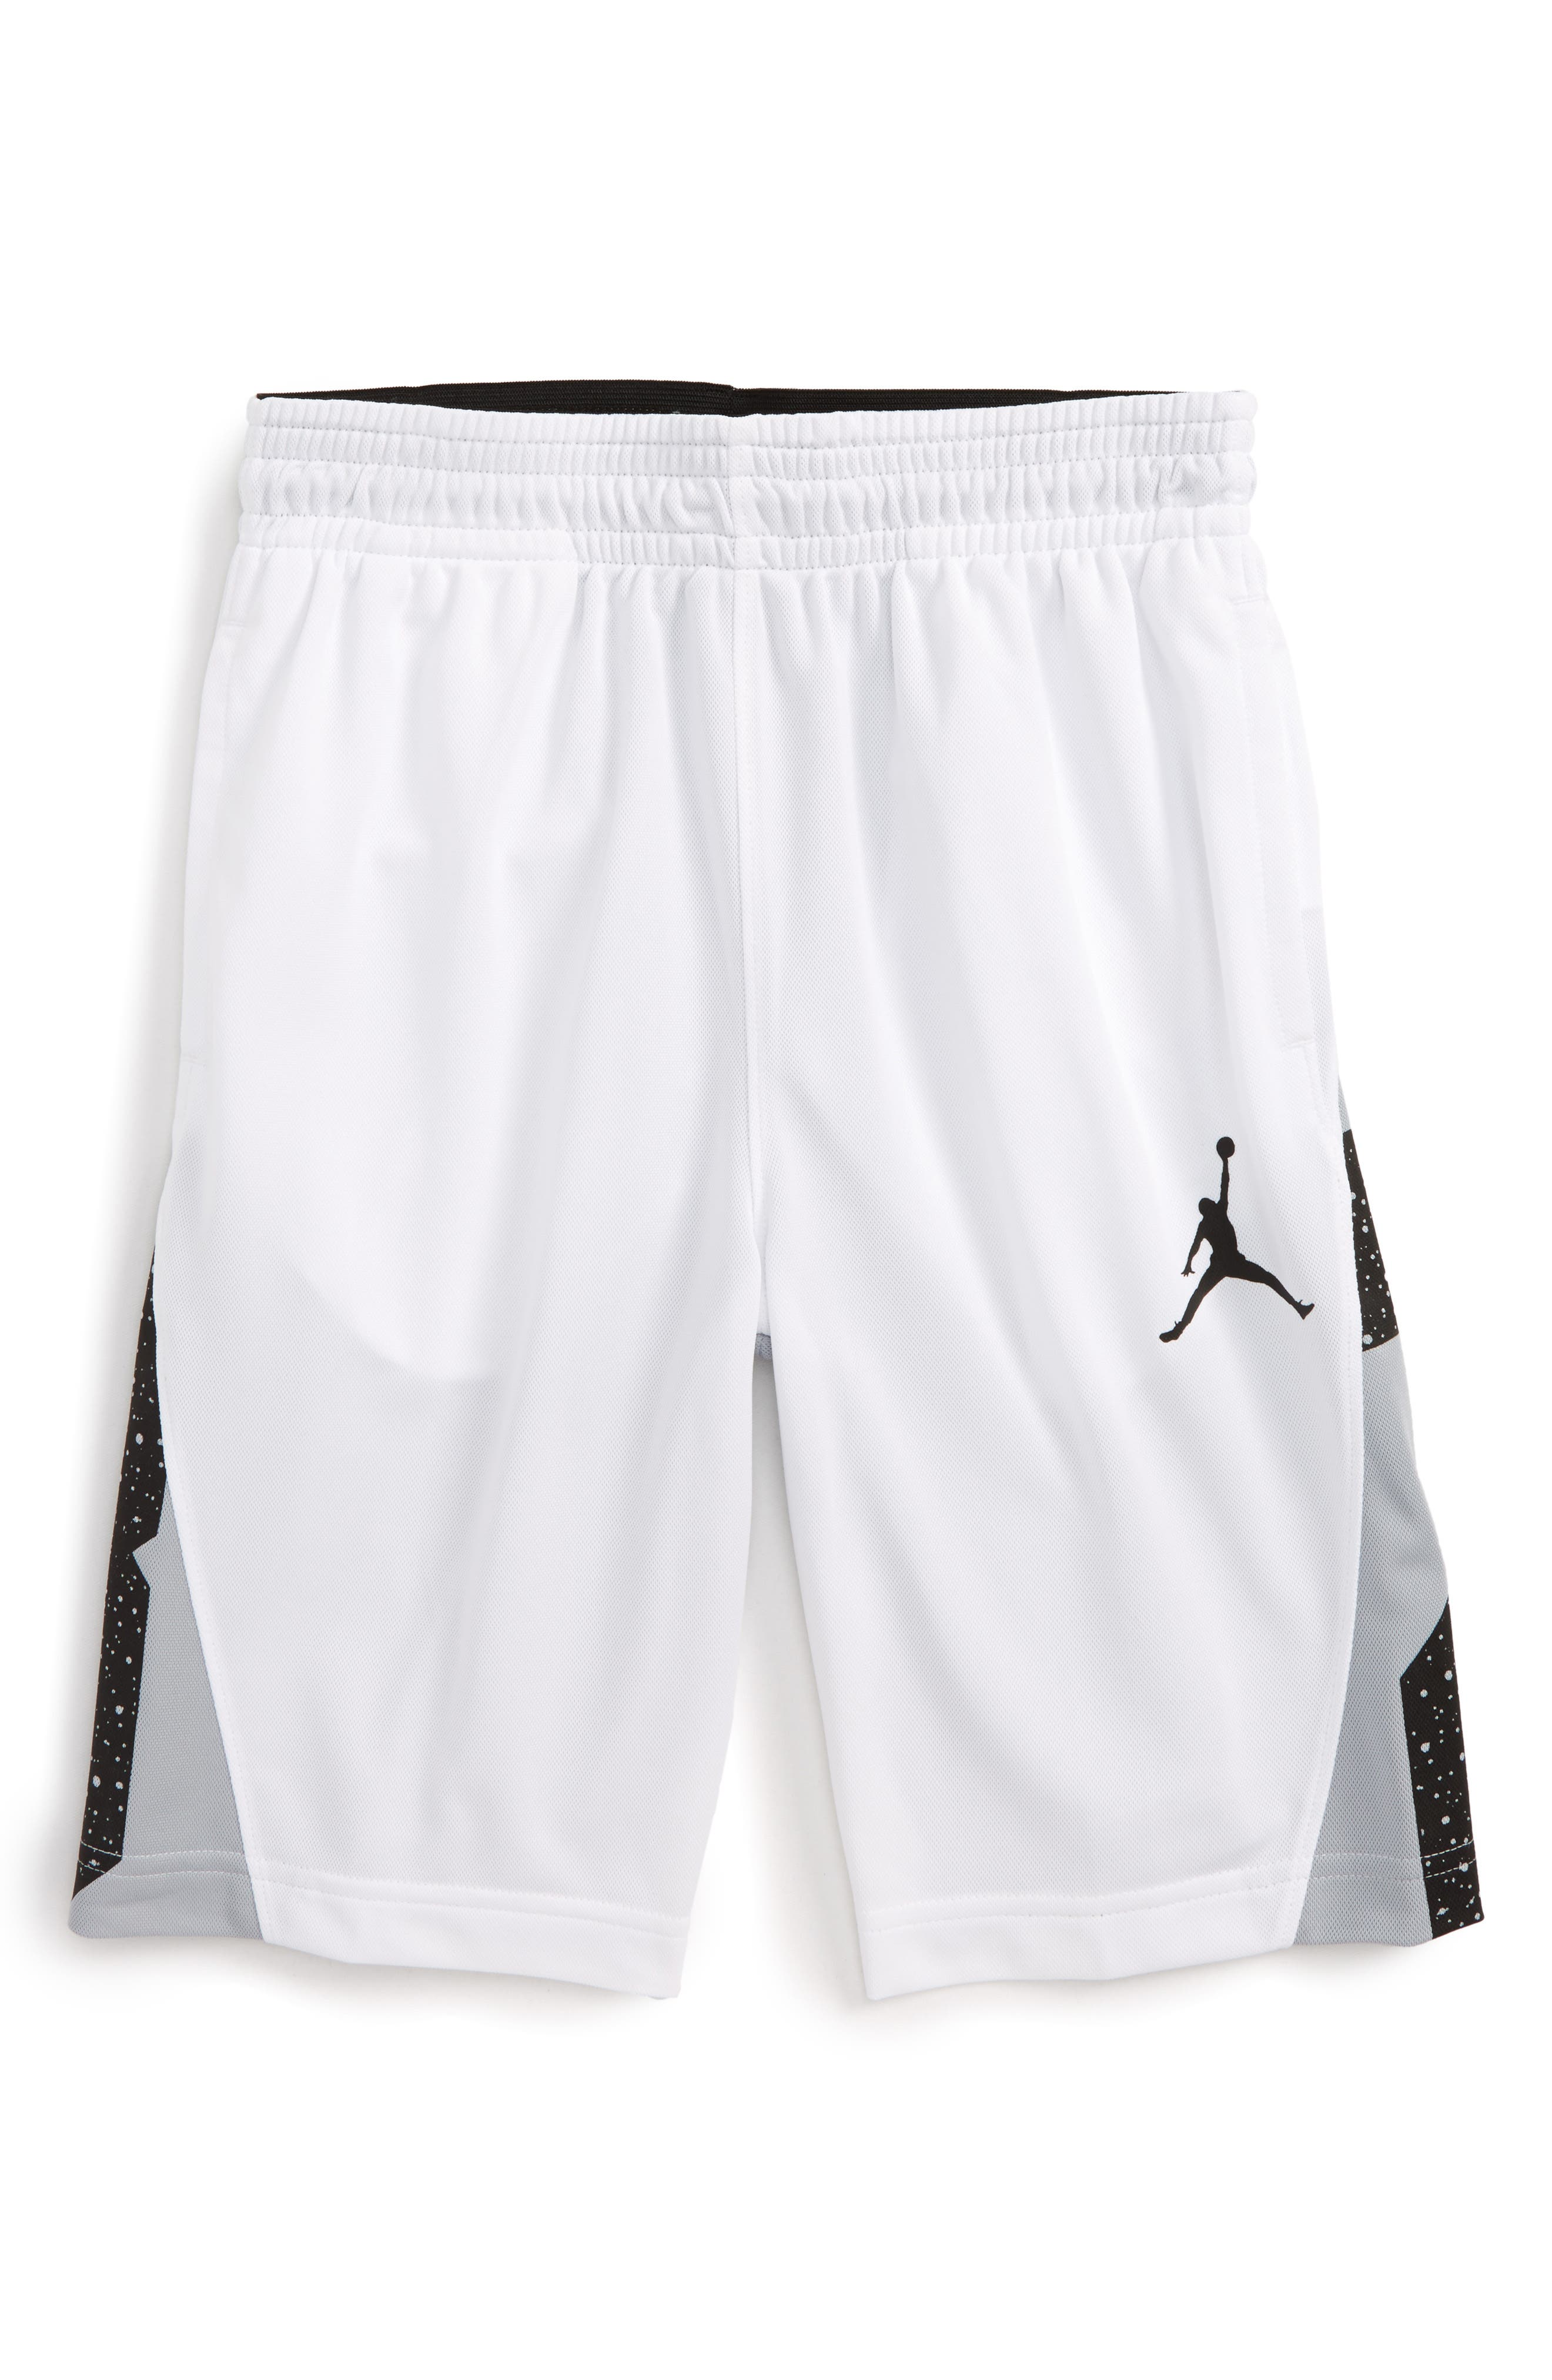 Jordan Speckle 23 Basketball Shorts (Big Boys)